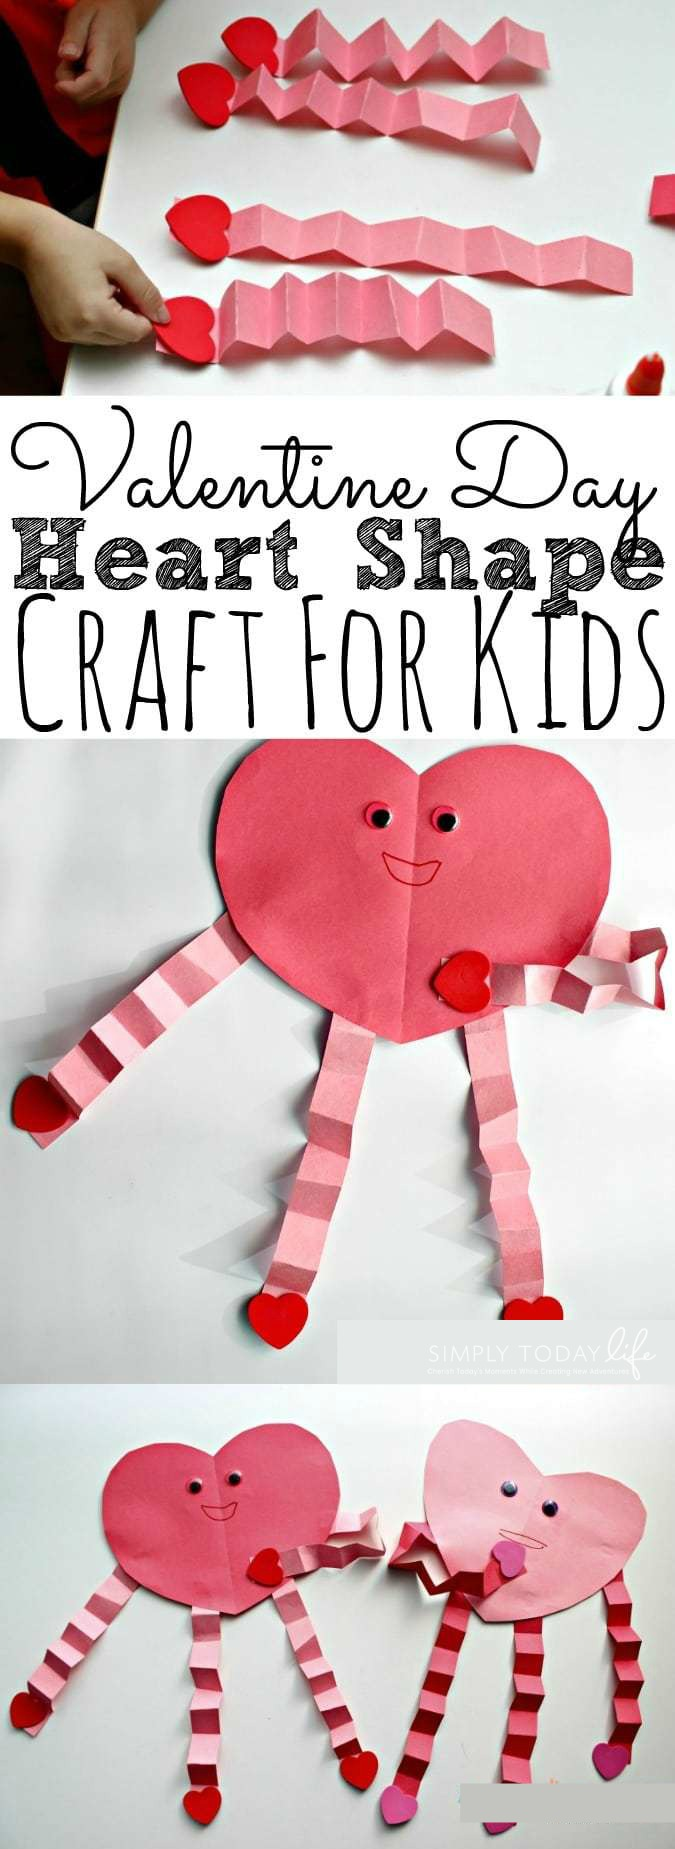 Easy and Cute Valentine's Day Heart Craft For Kids